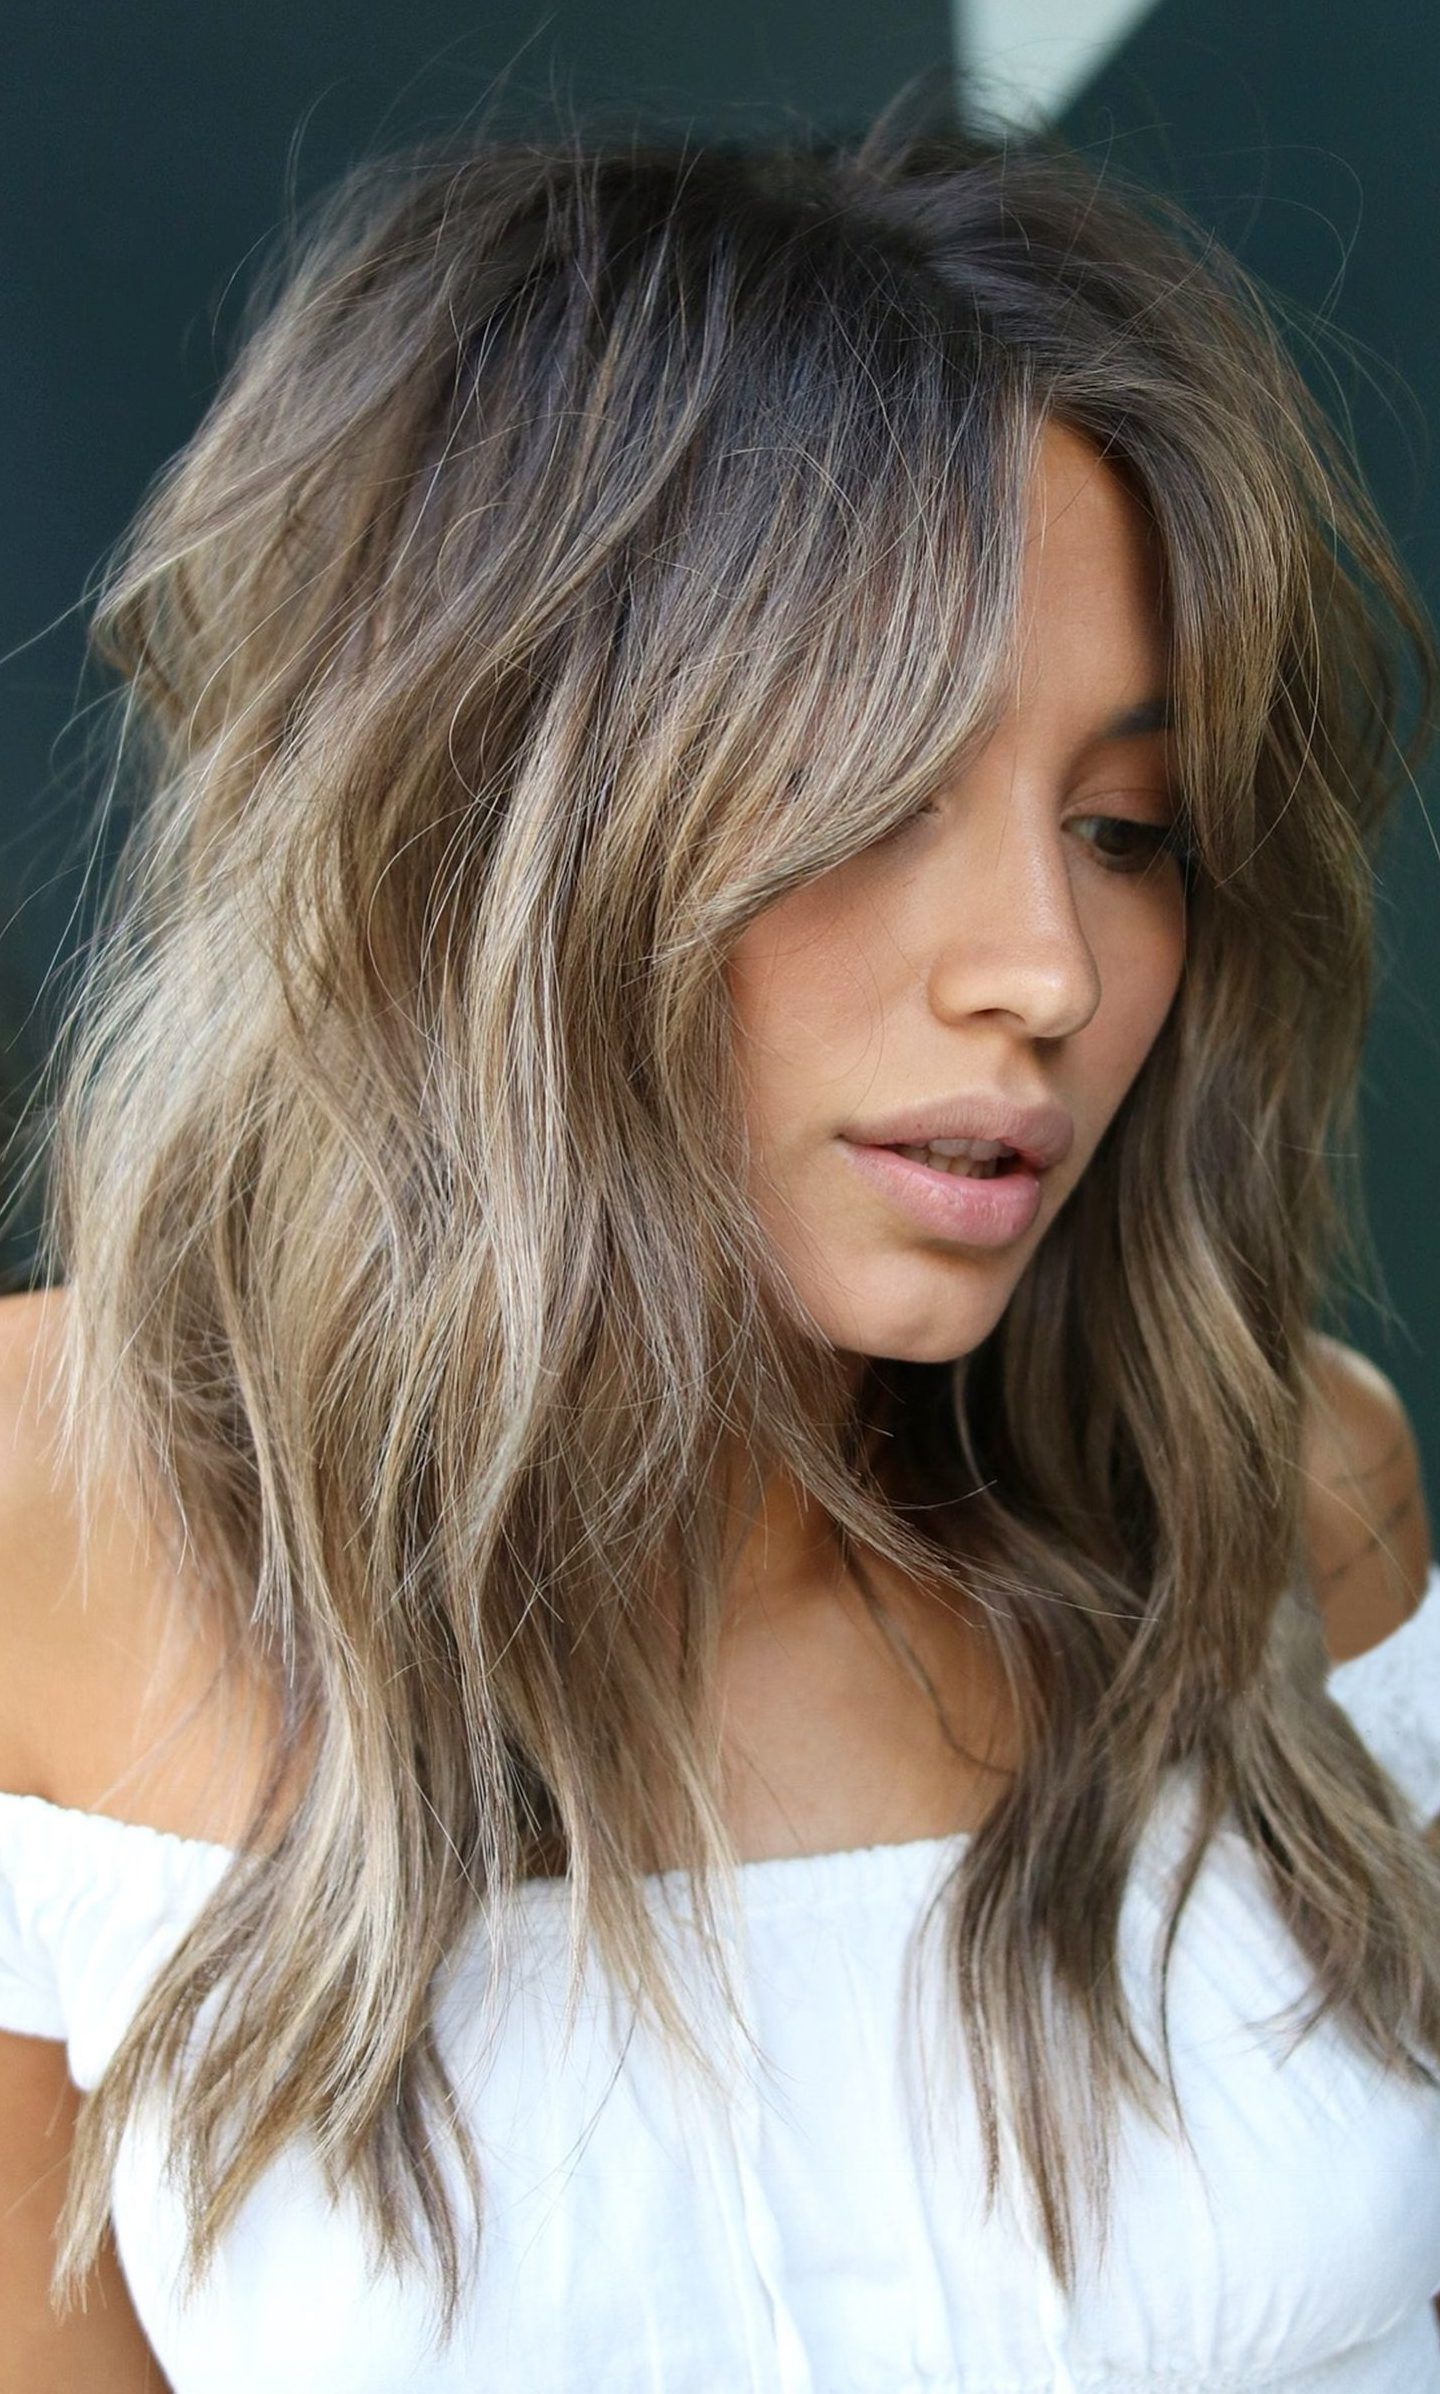 37 Hair Color Trends 2019 For Dark Skins That Make You Younger 2019 Hair Color Trends For In 2020 Summer Hair Color Summer Hair Color For Brunettes Brunette Hair Color